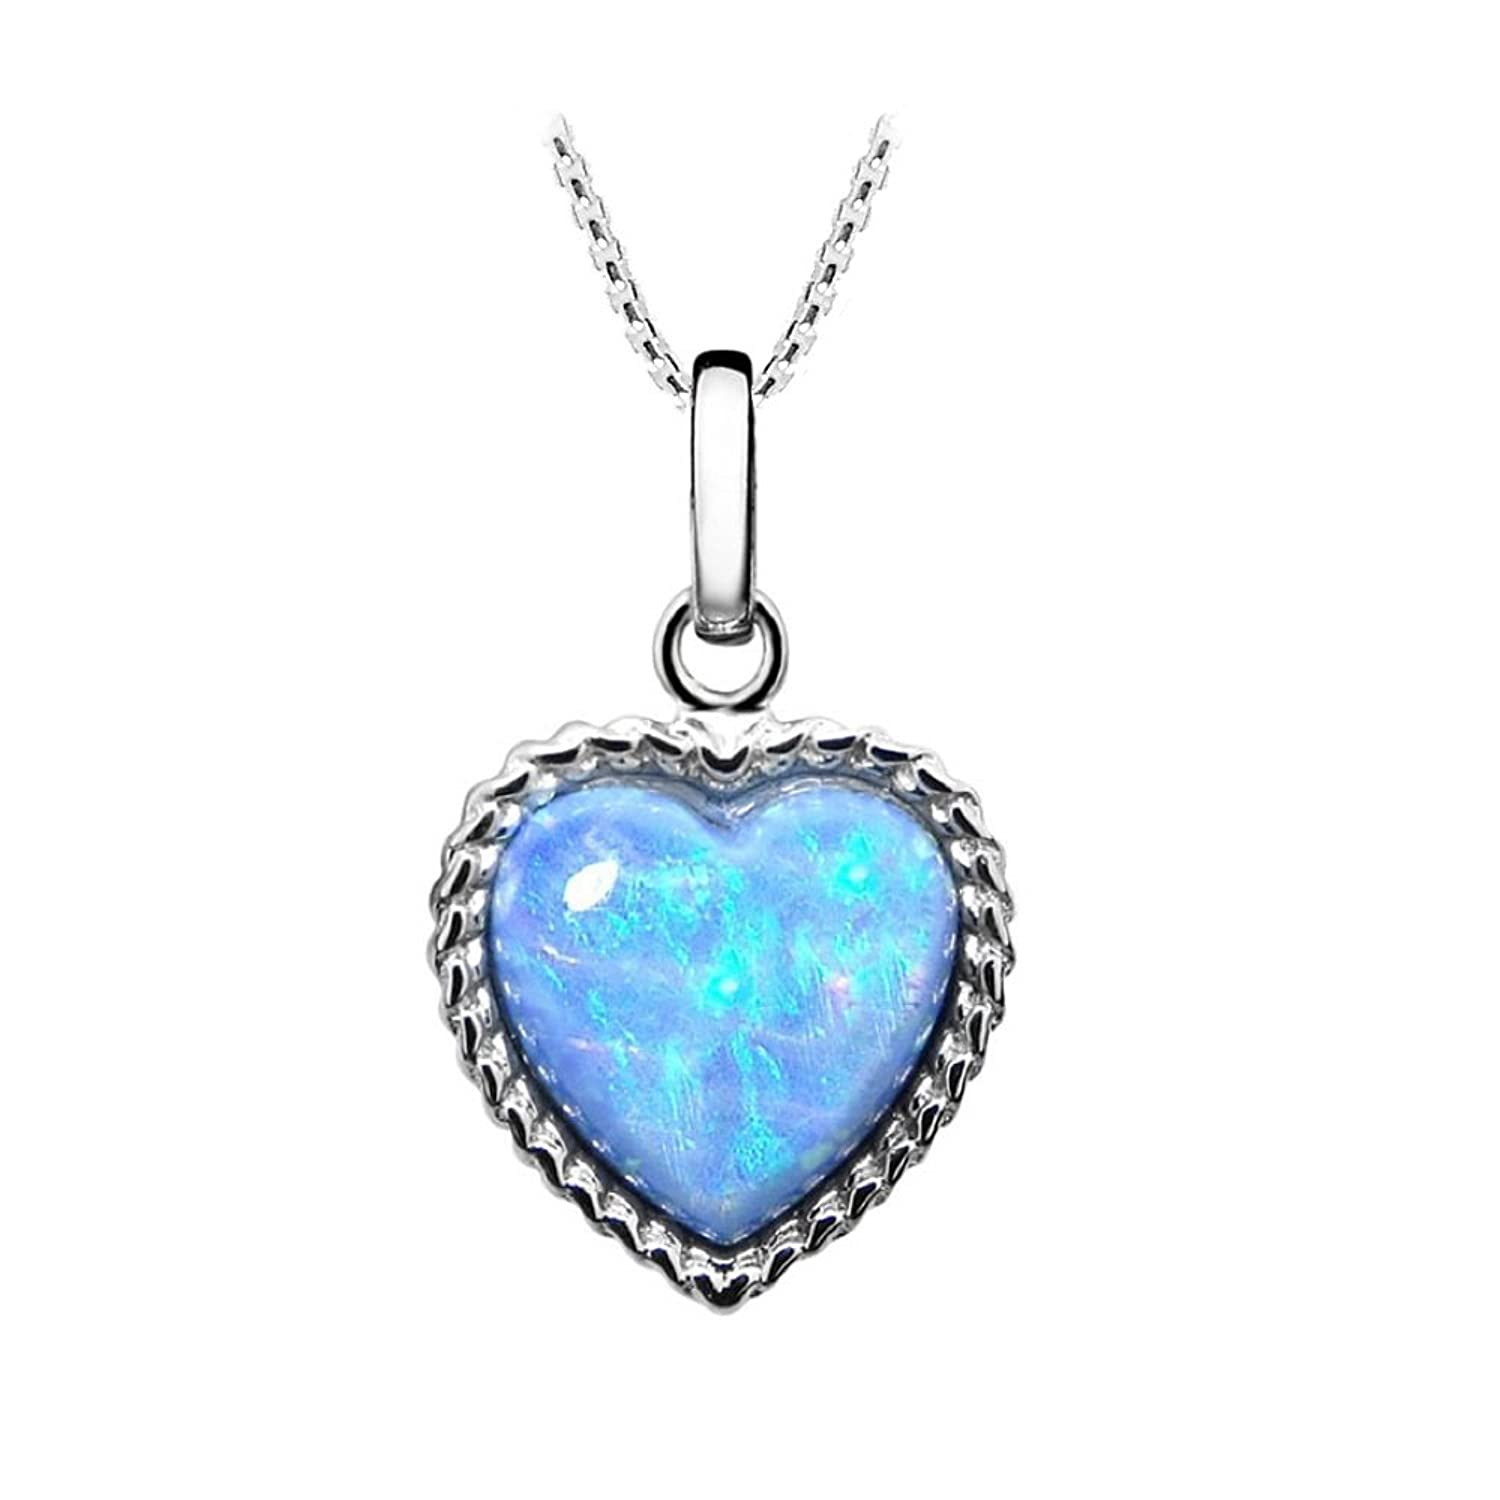 Vibrant Blue Opal Pendant, Sterling Silver with Round 12mm Cultured Opal.